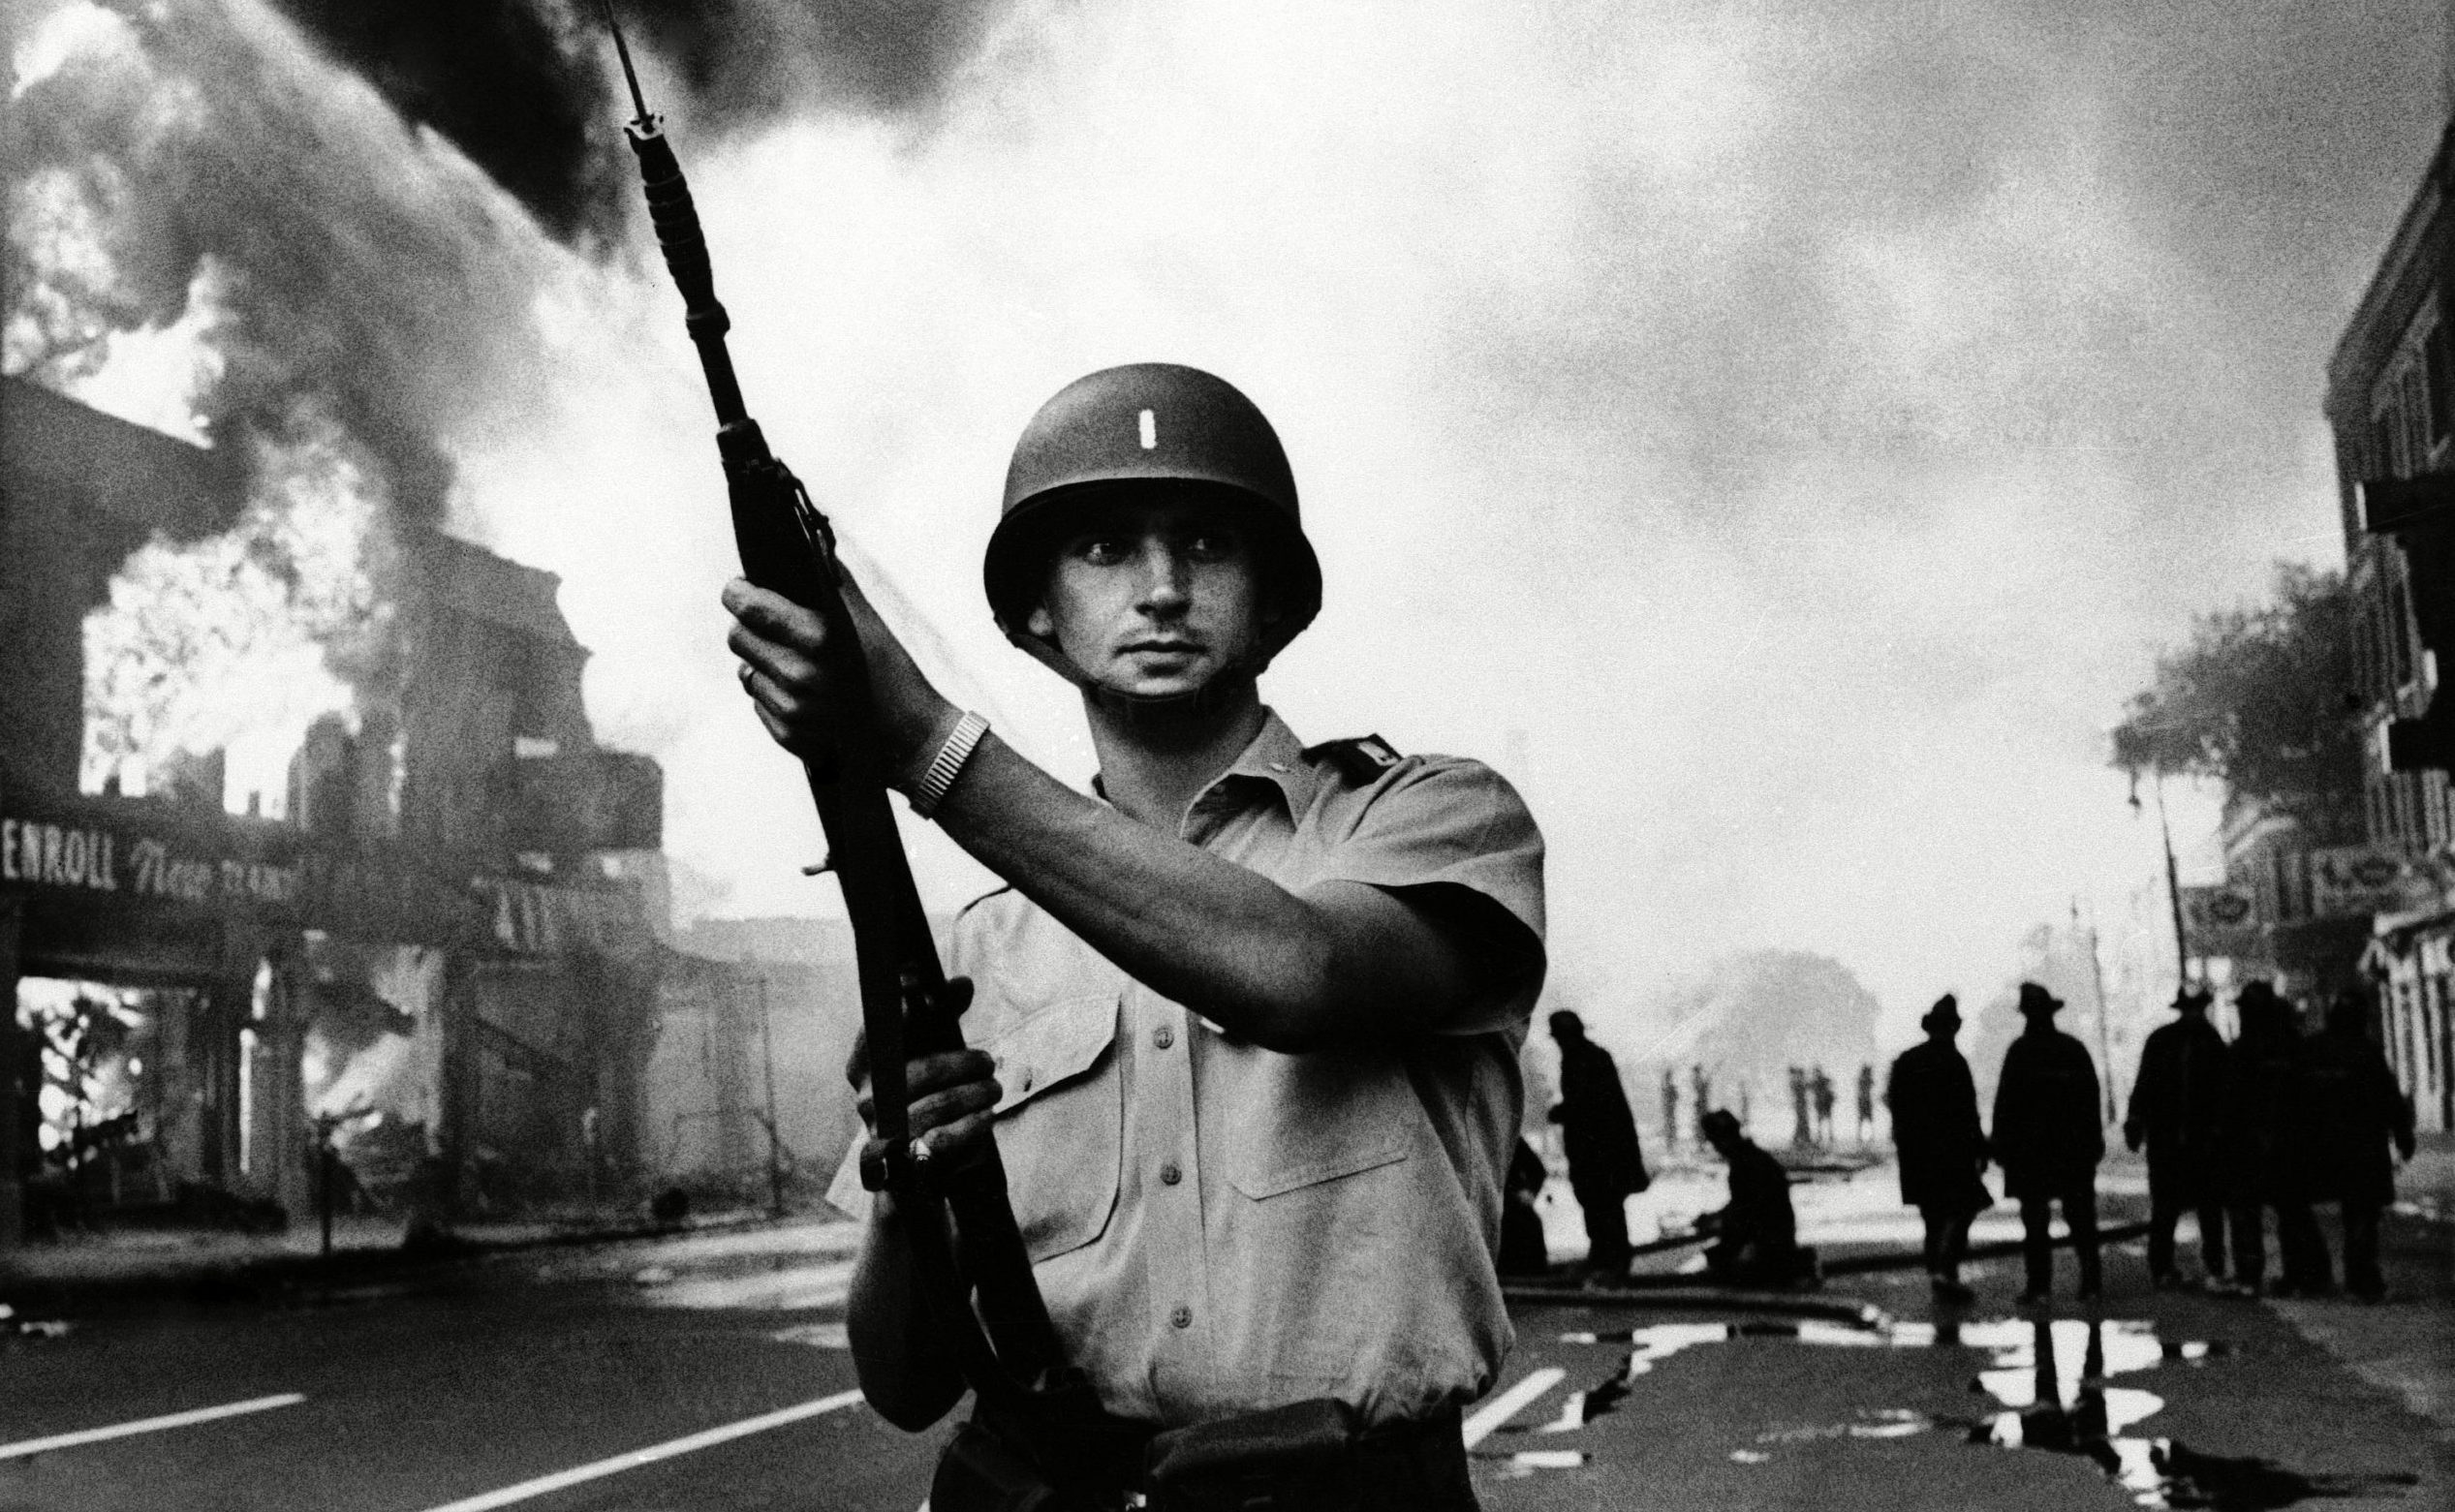 A Michigan national guardsman stands at the ready as firemen battle a blaze in a riot-torn district of Detroit in July 1967